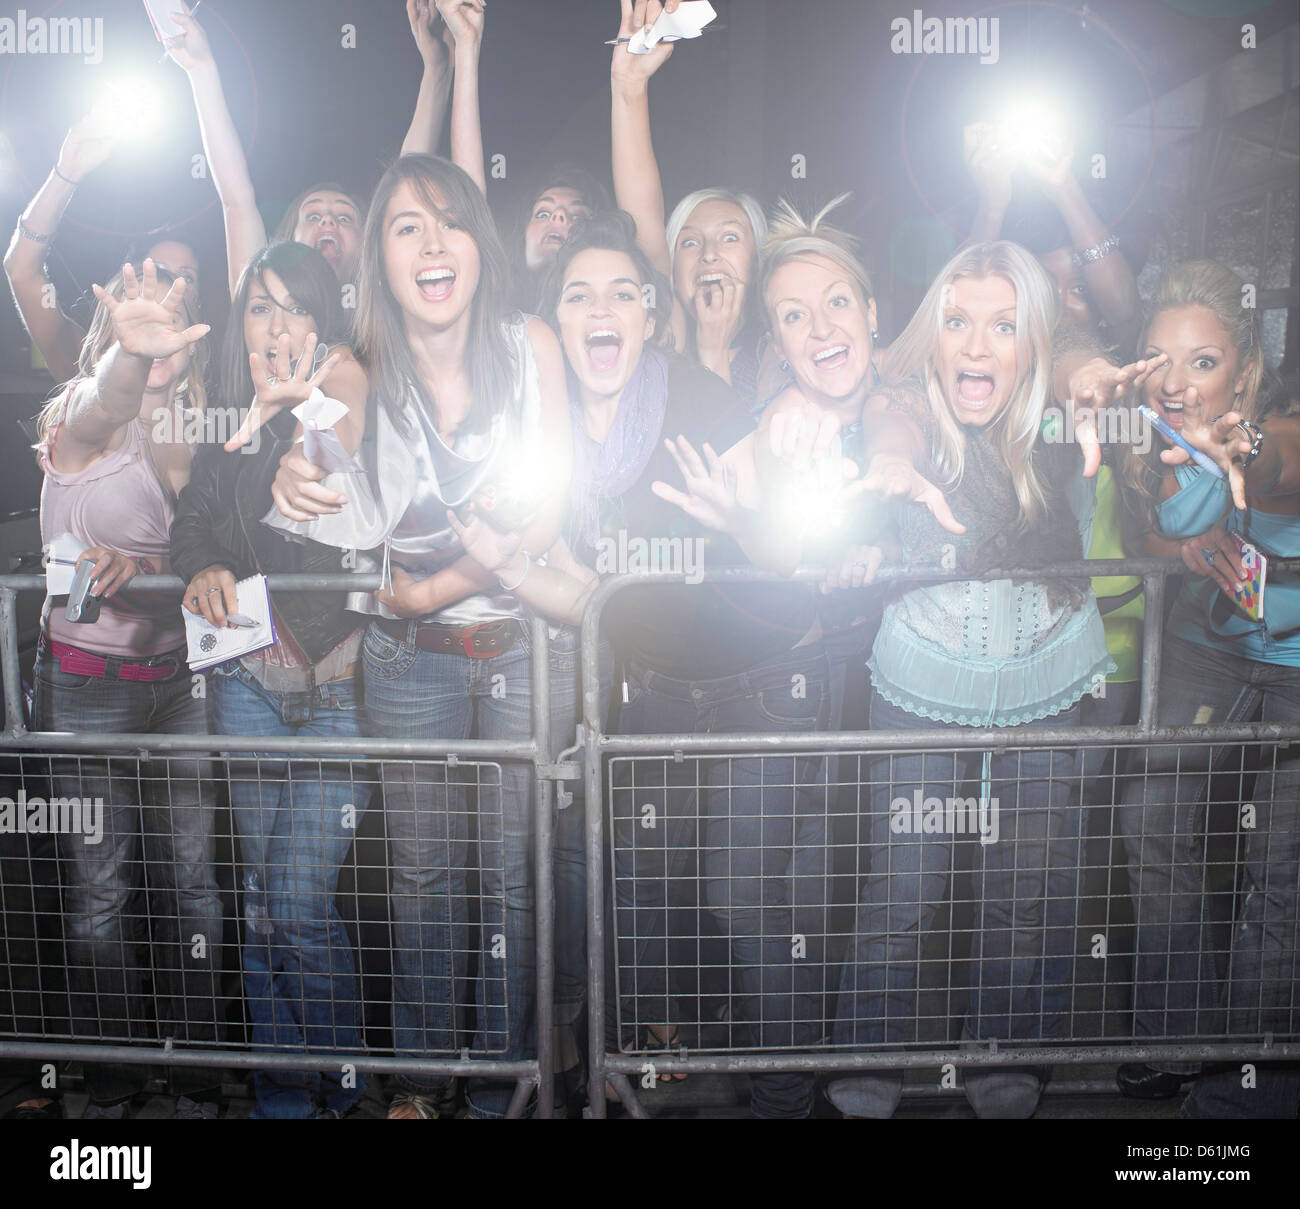 Fans taking pictures with cell phone behind barrier stock photo - Crowd Of Young Female Fans Screaming Cheering T Concert Stock Image